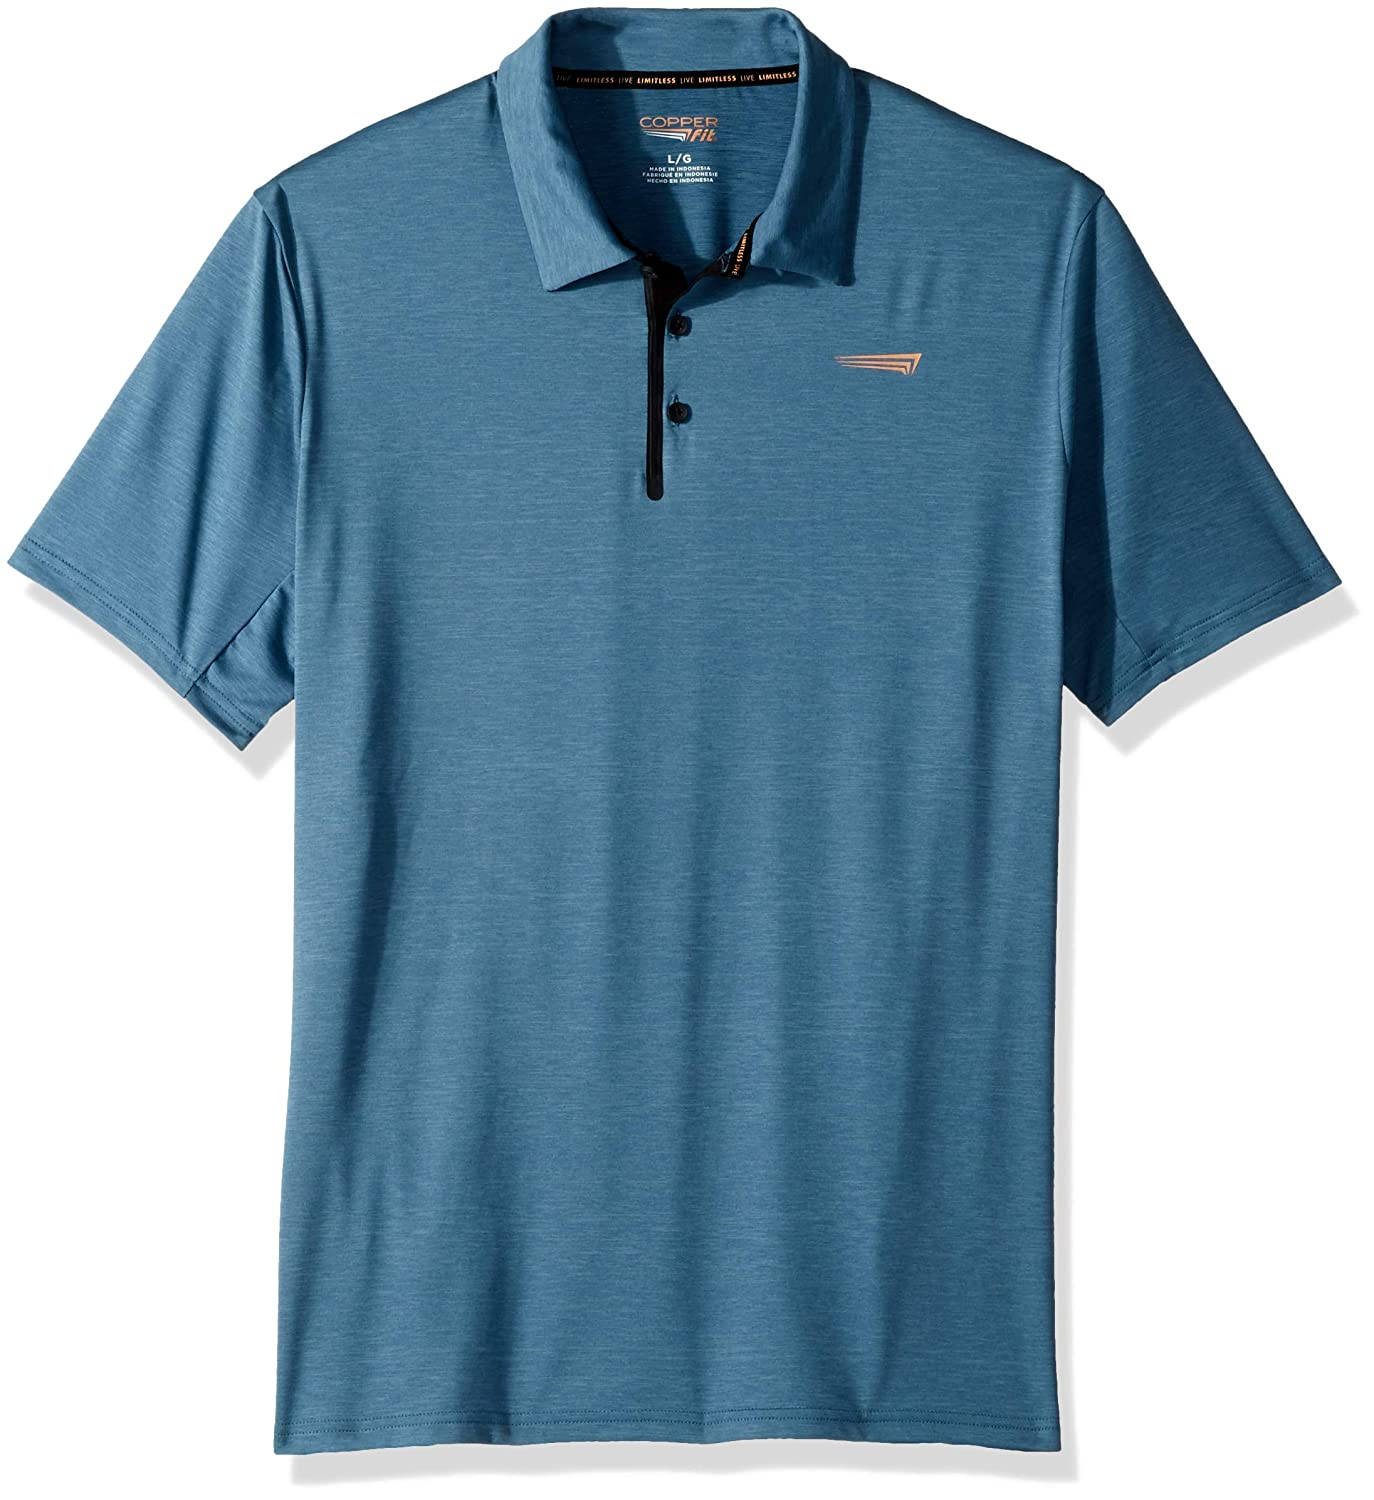 Copper Fit Mens Short Sleeve Polo